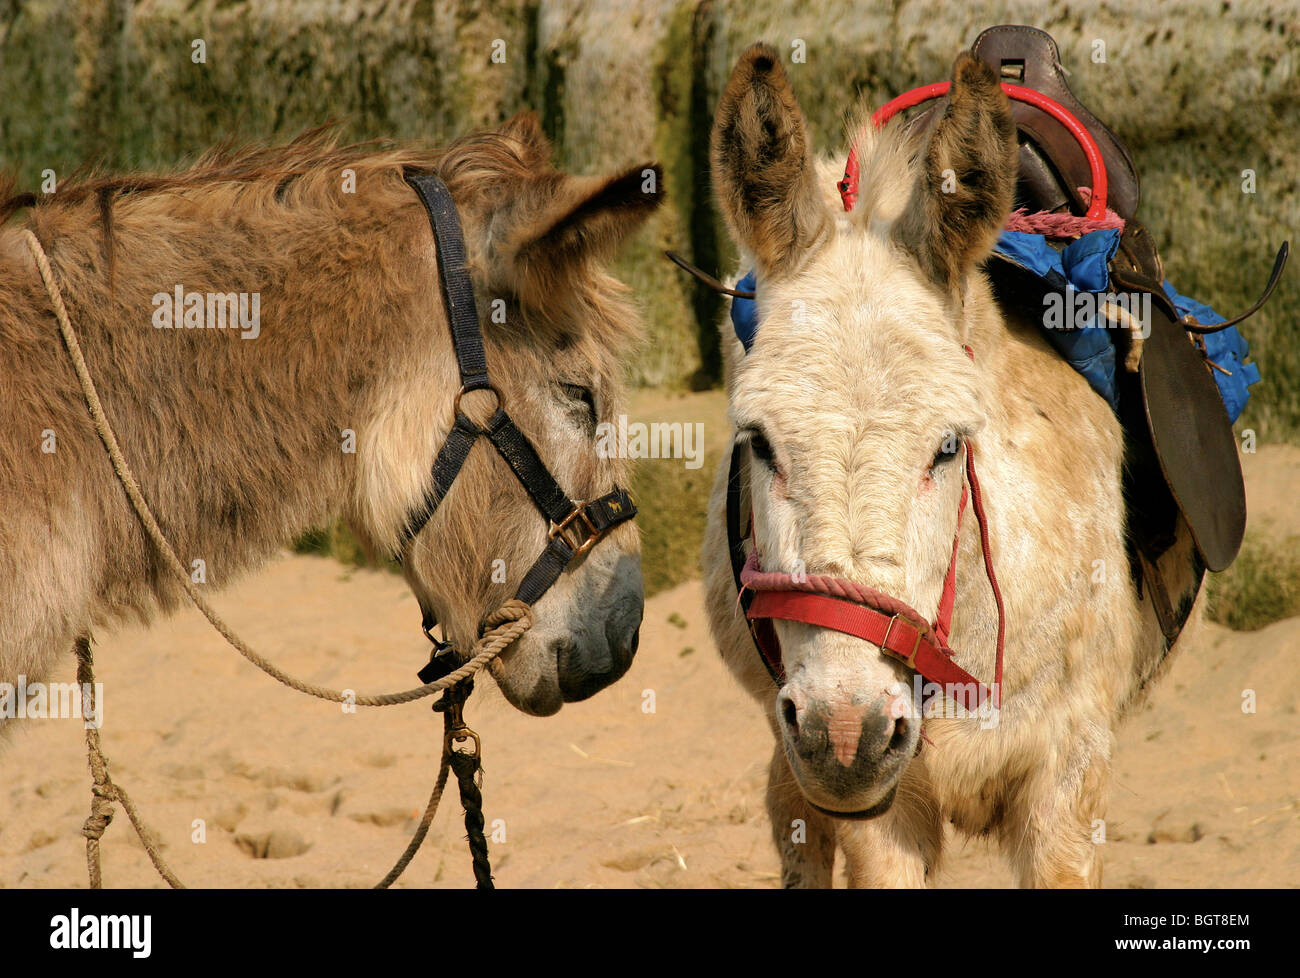 Donkeys on a beach for donkey rides - Stock Image